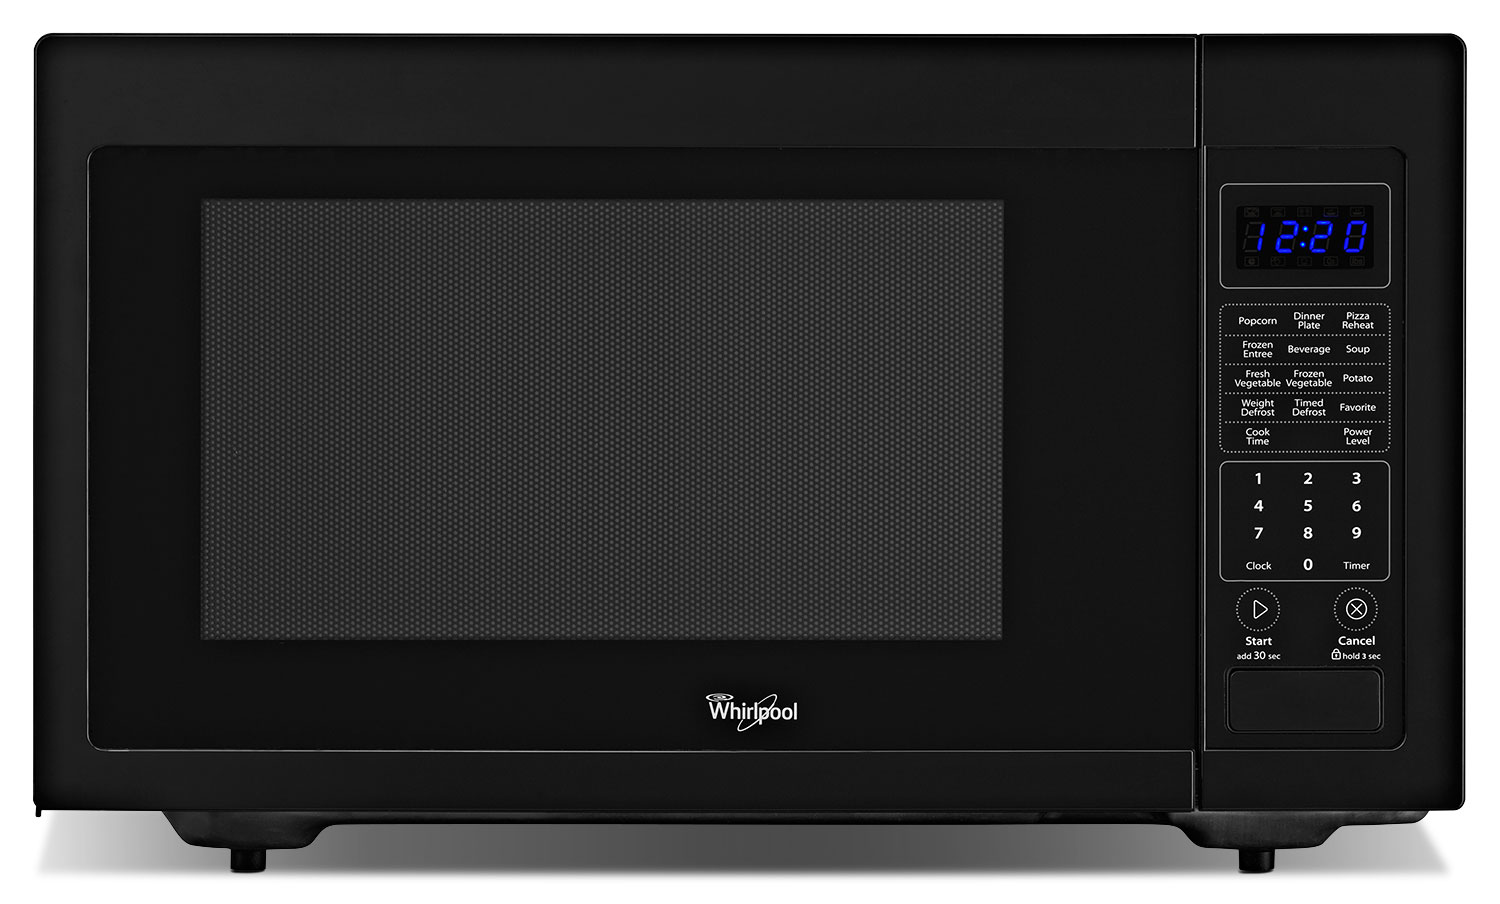 Whirlpool 1.6 Cu. Ft. Countertop Microwave – YWMC30516DB